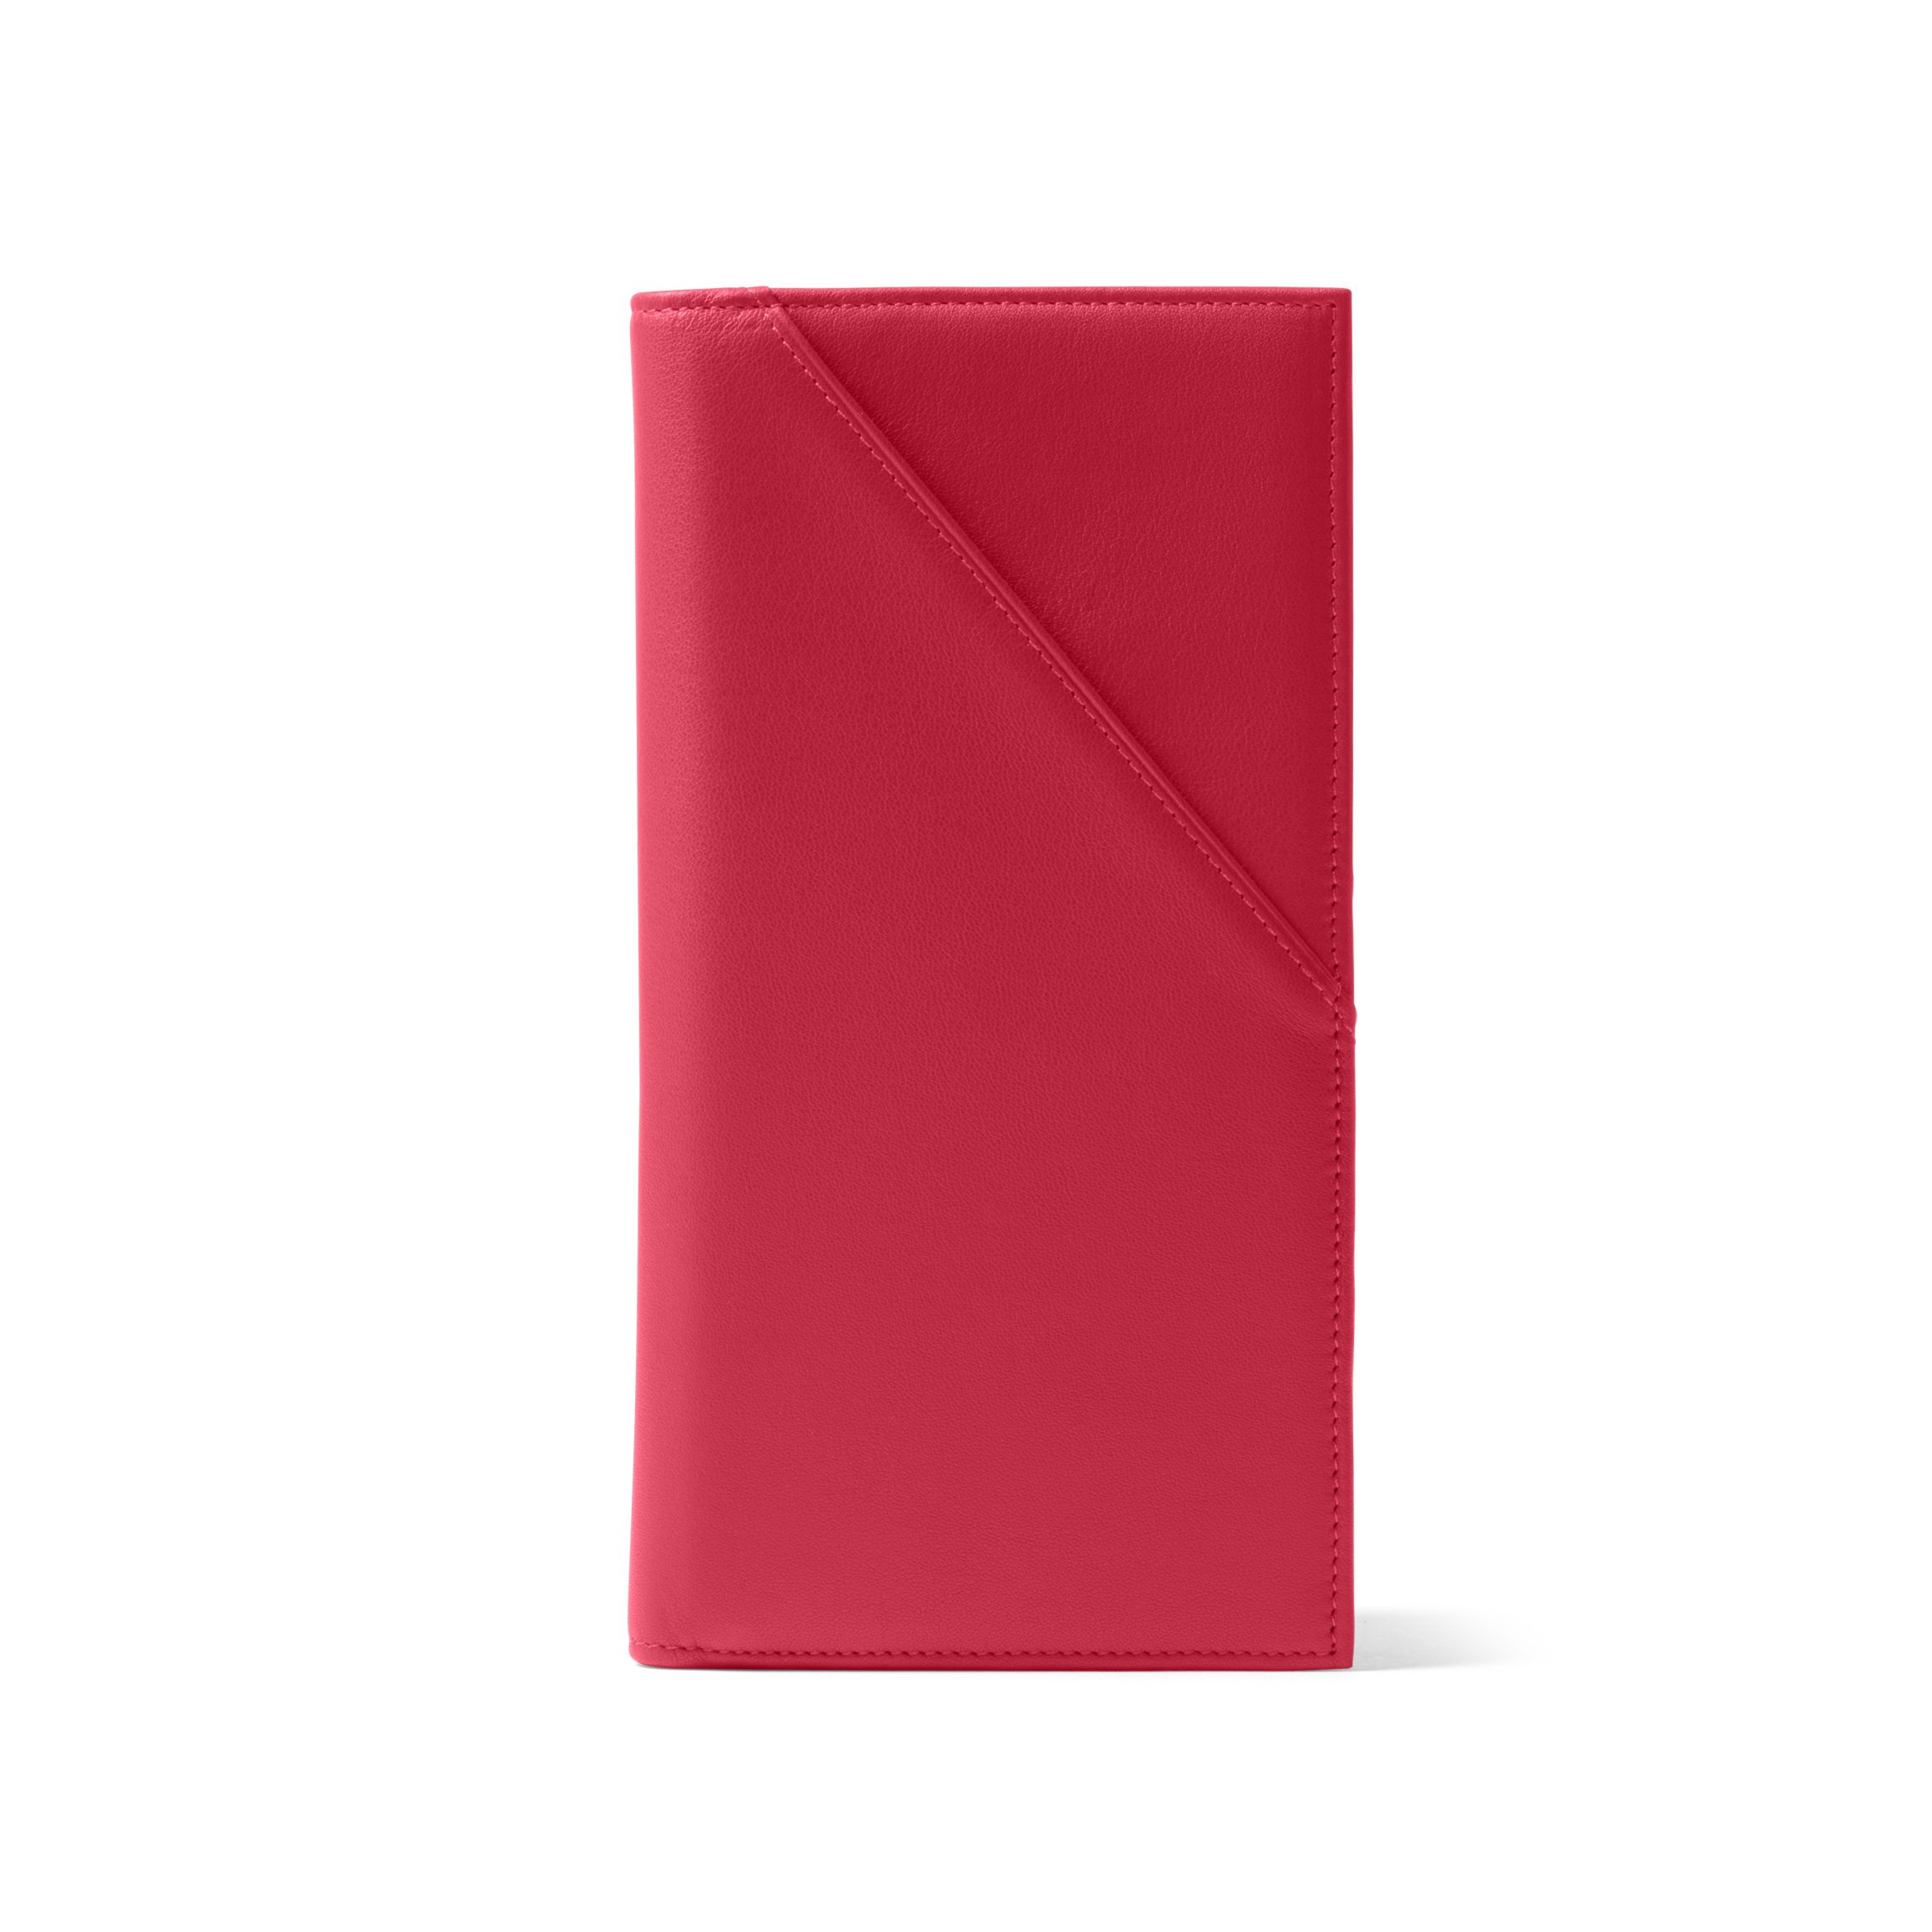 Travel Document Holder - Full Grain Leather Leather - Red Apple (red)